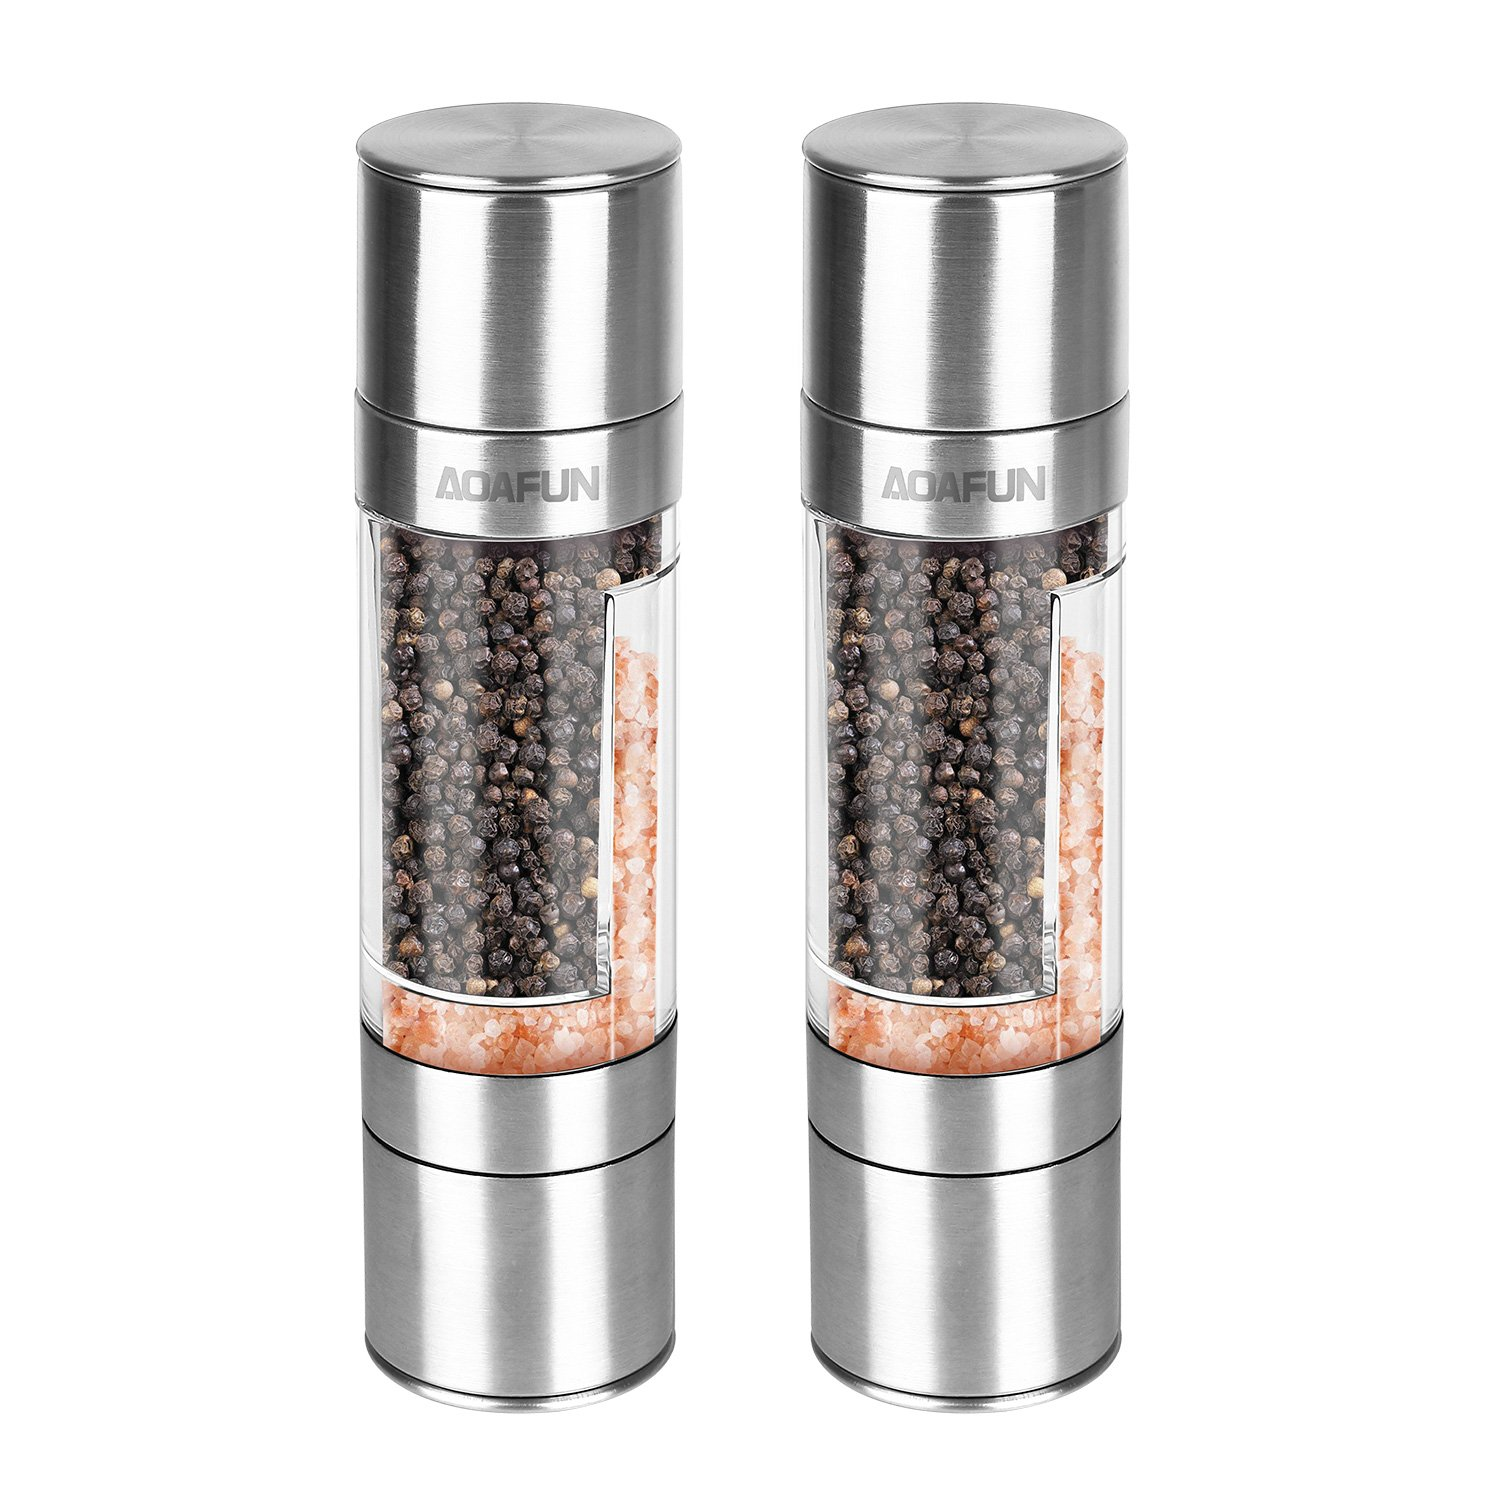 AOAFUN Premium Stainless Steel Salt and Pepper Grinder Set of 2 - Spice Grinder with Adjustable Coarseness, Ceramic Rotor, Tall Salt and Pepper Shaker, Brushed Stainless. AFAT031